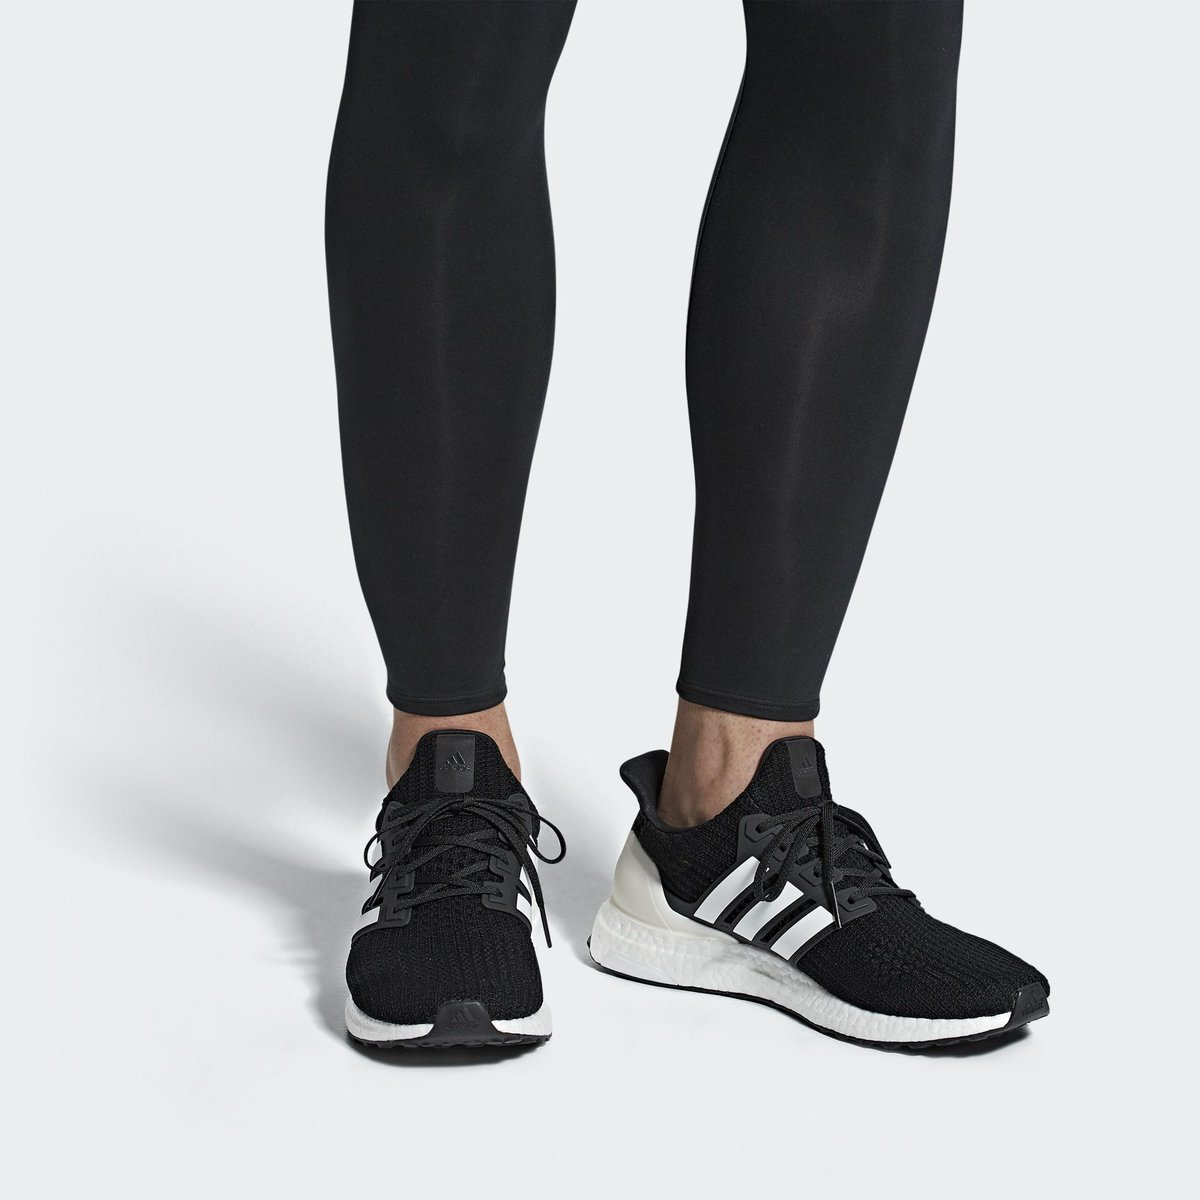 b11daf858c328 ENDS TONIGHT! adidas Ultra Boost 4.0 Show Your Stripes. Retail  180. Now   149 shipped. Discount applied in cart. —  http   bit.ly 2OTlDQr pic.twitter.com   ...